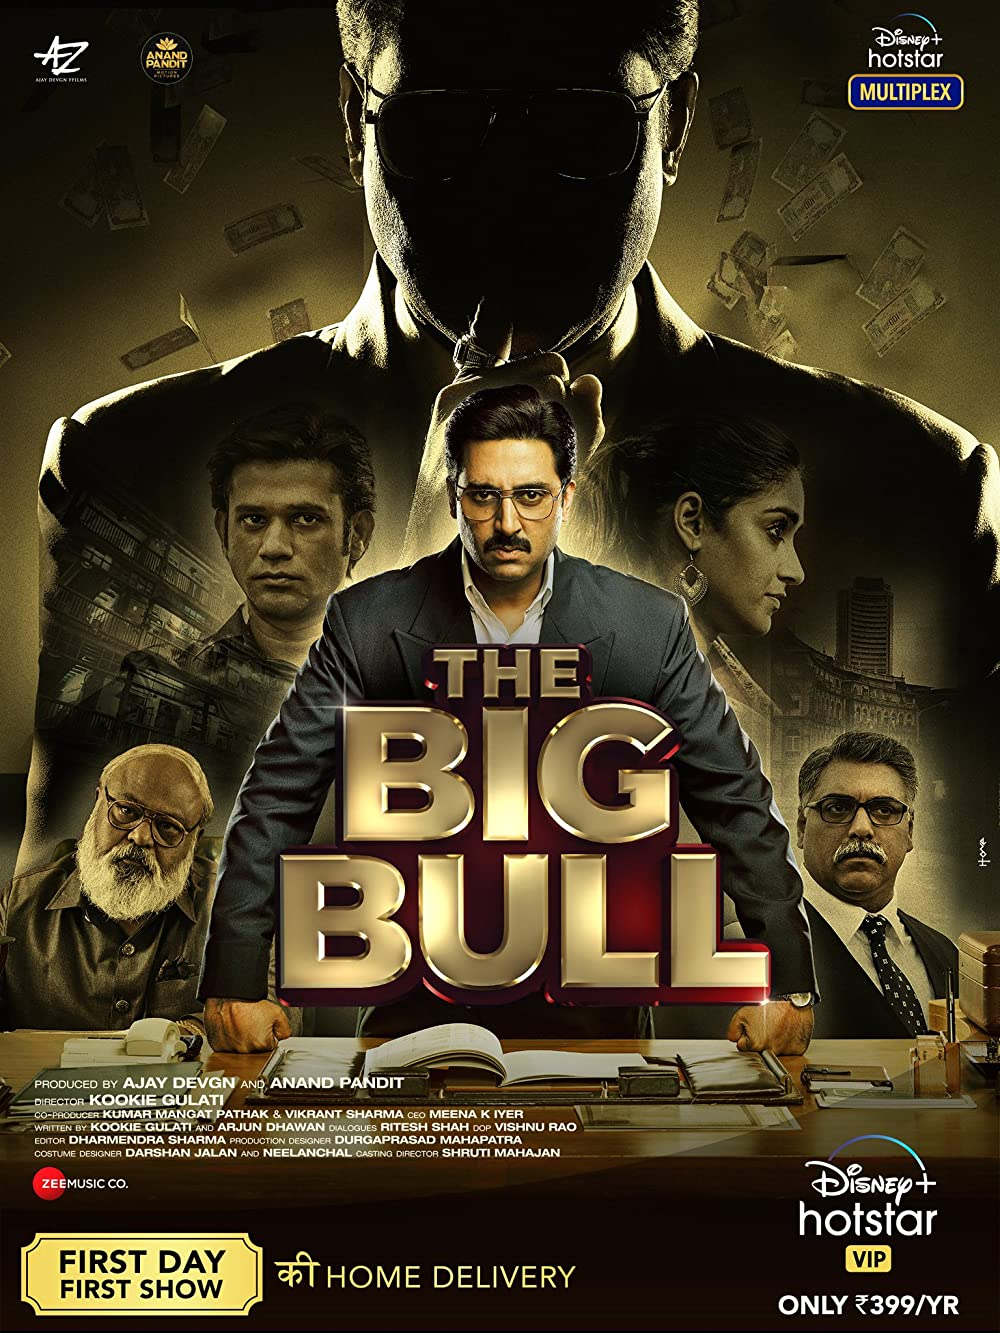 The Big Bull 2021 Hindi Movie 1080p DSNP HDRip ESubs 2.24GB Download